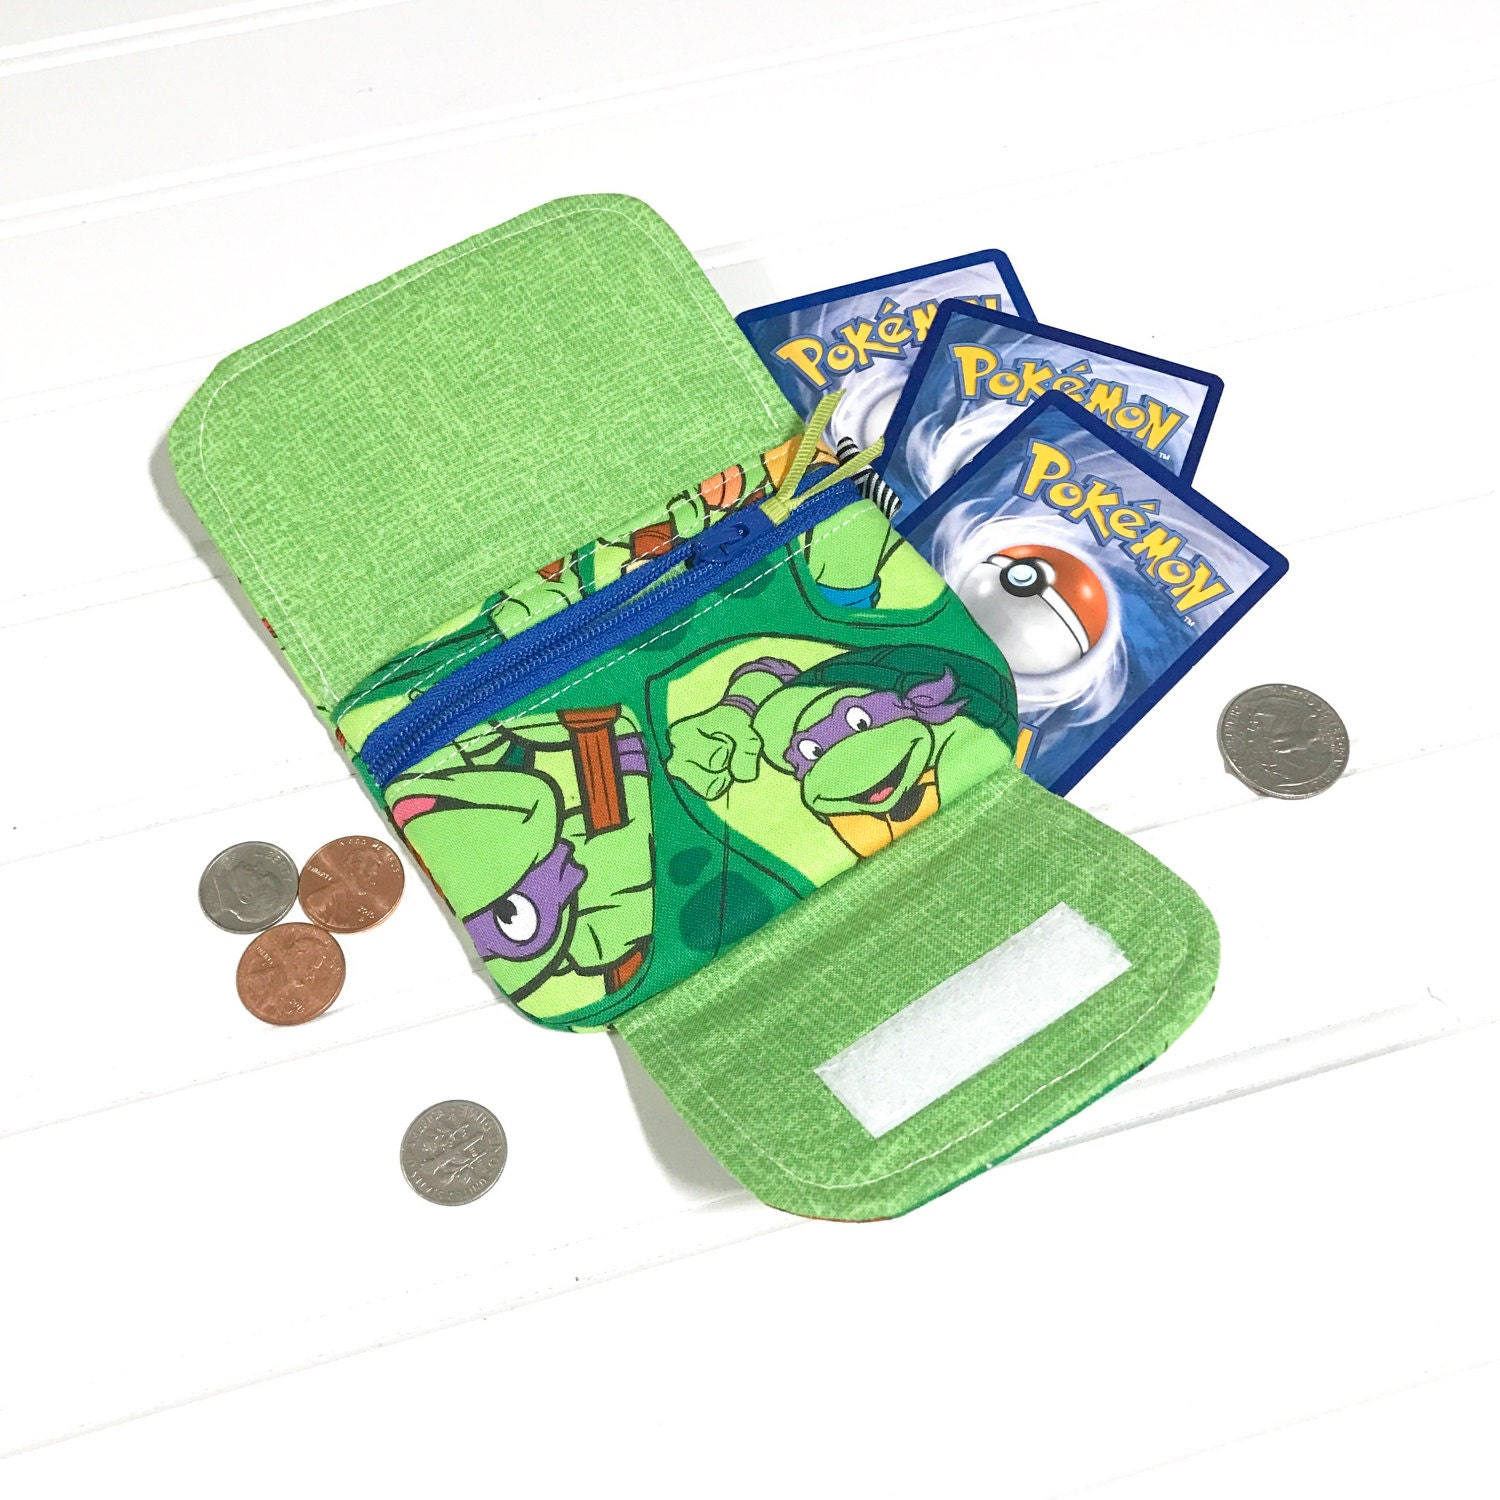 Tmnt wallet turtle wallet easter gift coin purse zipper tmnt wallet turtle wallet easter gift coin purse zipper wristlet childrens negle Choice Image